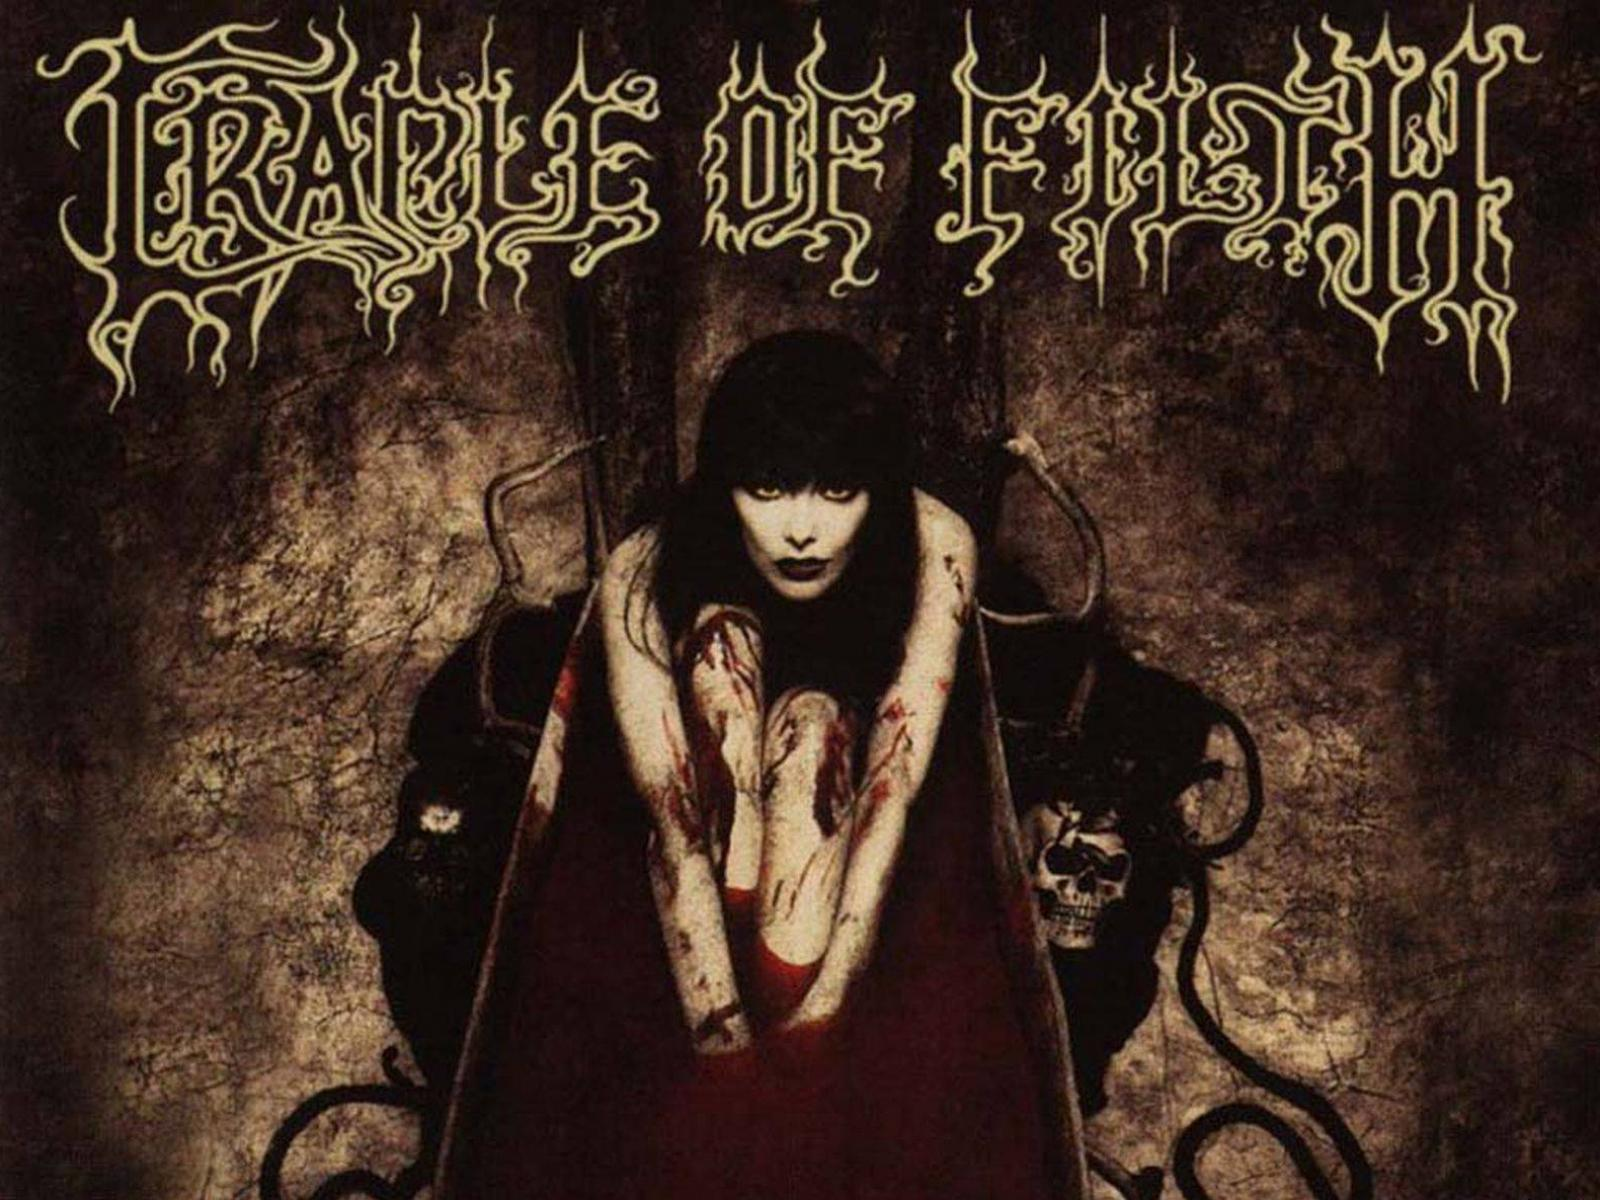 Обои Cradle of filth 1600x1200